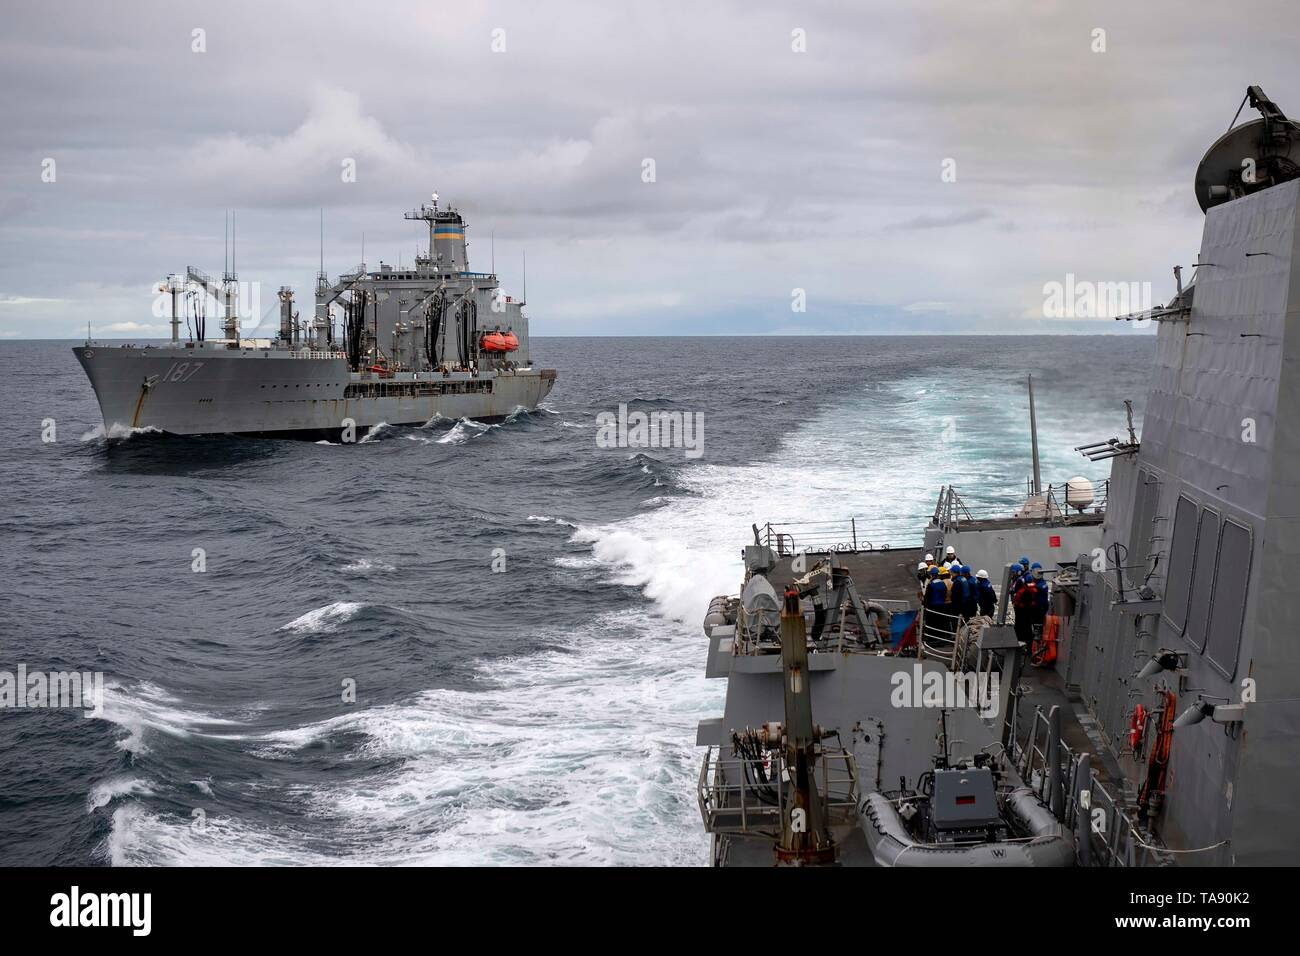 190517-N-EH218-1177  GULF OF ALASKA (May 17, 2019) The Arleigh Burke-class guided-missile destroyer USS Kidd (DDG 100) breaks away from the Military Sealift Command fleet replenishment oiler USNS Henry J. Kaiser (T-AO 187) after completing a replenishment-at-sea while participating in Exercise Northern Edge 2019. Northern Edge is one in a series of U.S. Indo-Pacific Command exercises in 2019 that prepares joint forces to respond to crisis in the Indo-Pacific region. (U.S. Navy photo by Mass Communication Specialist 1st Class Ryan J. Batchelder/Released) - Stock Image